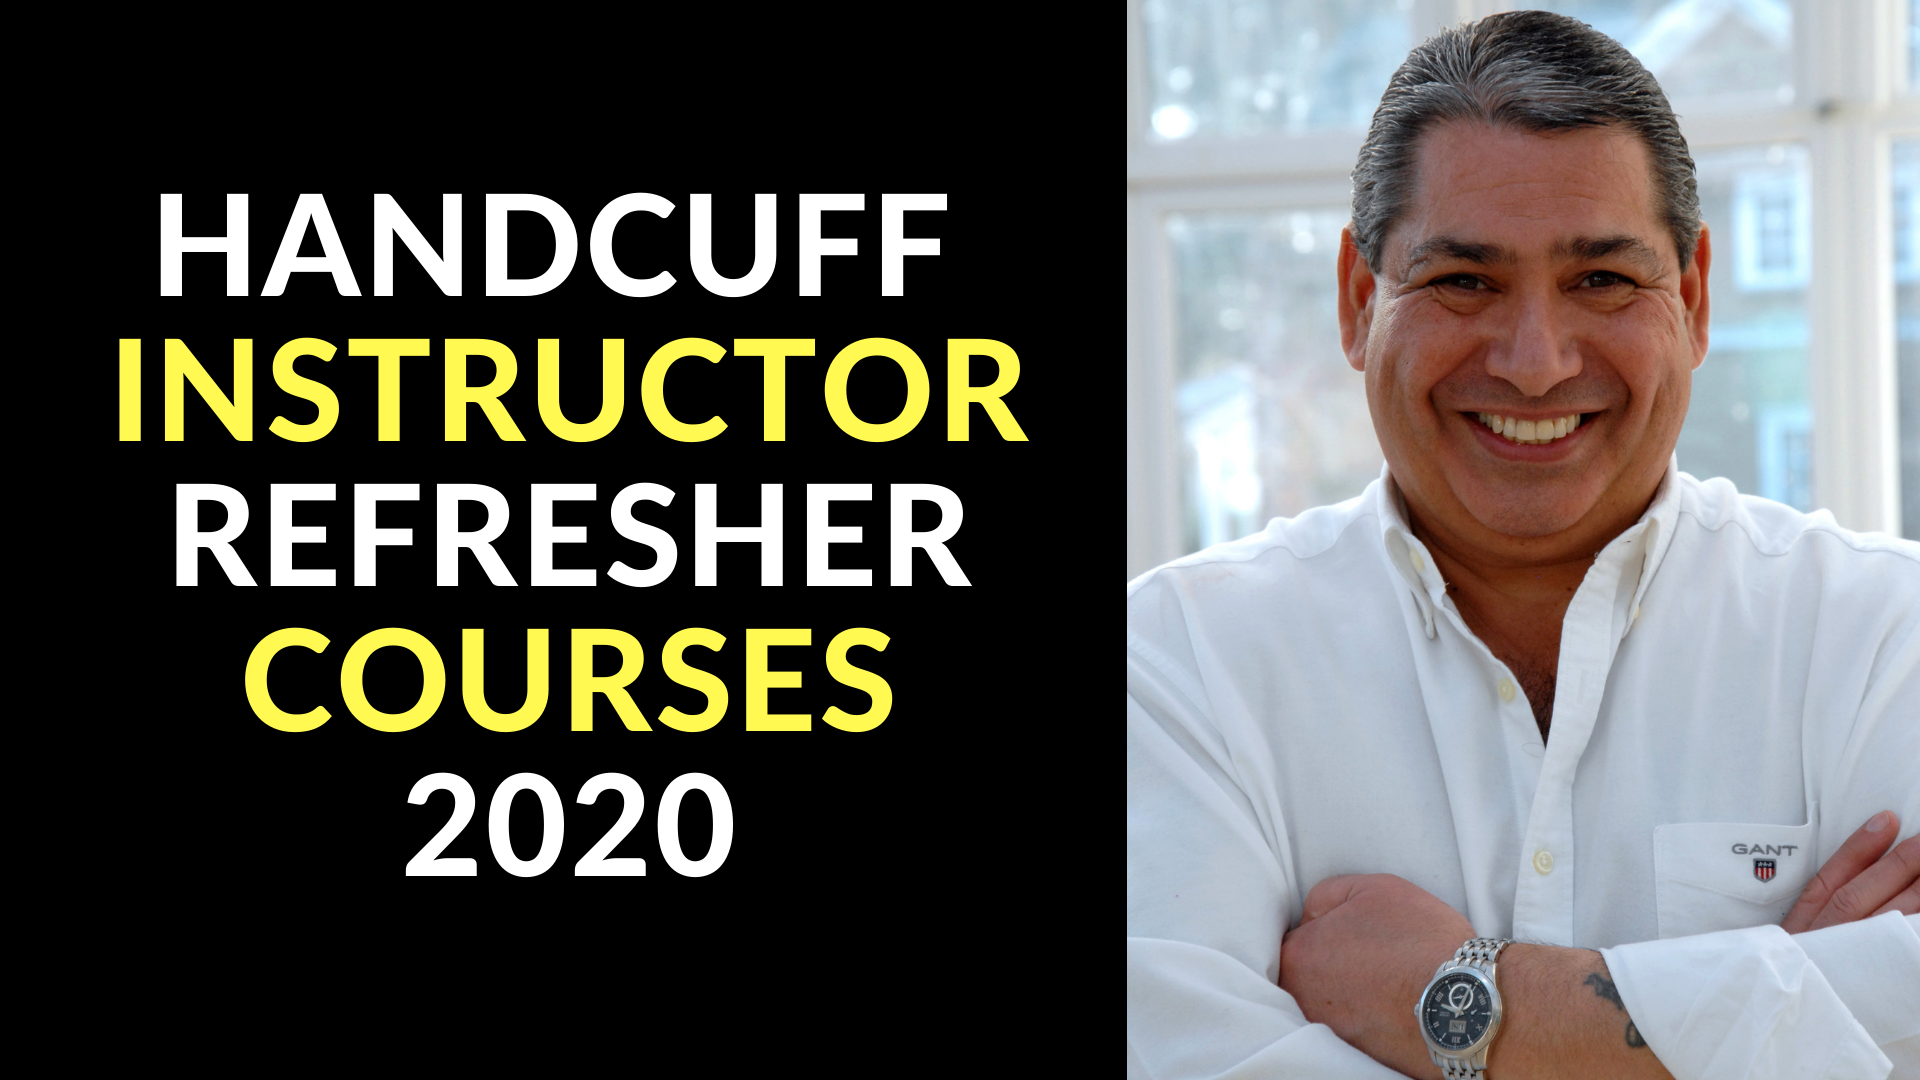 HANDCUFF INSTRUCTOR REFRESHER COURSES 2020